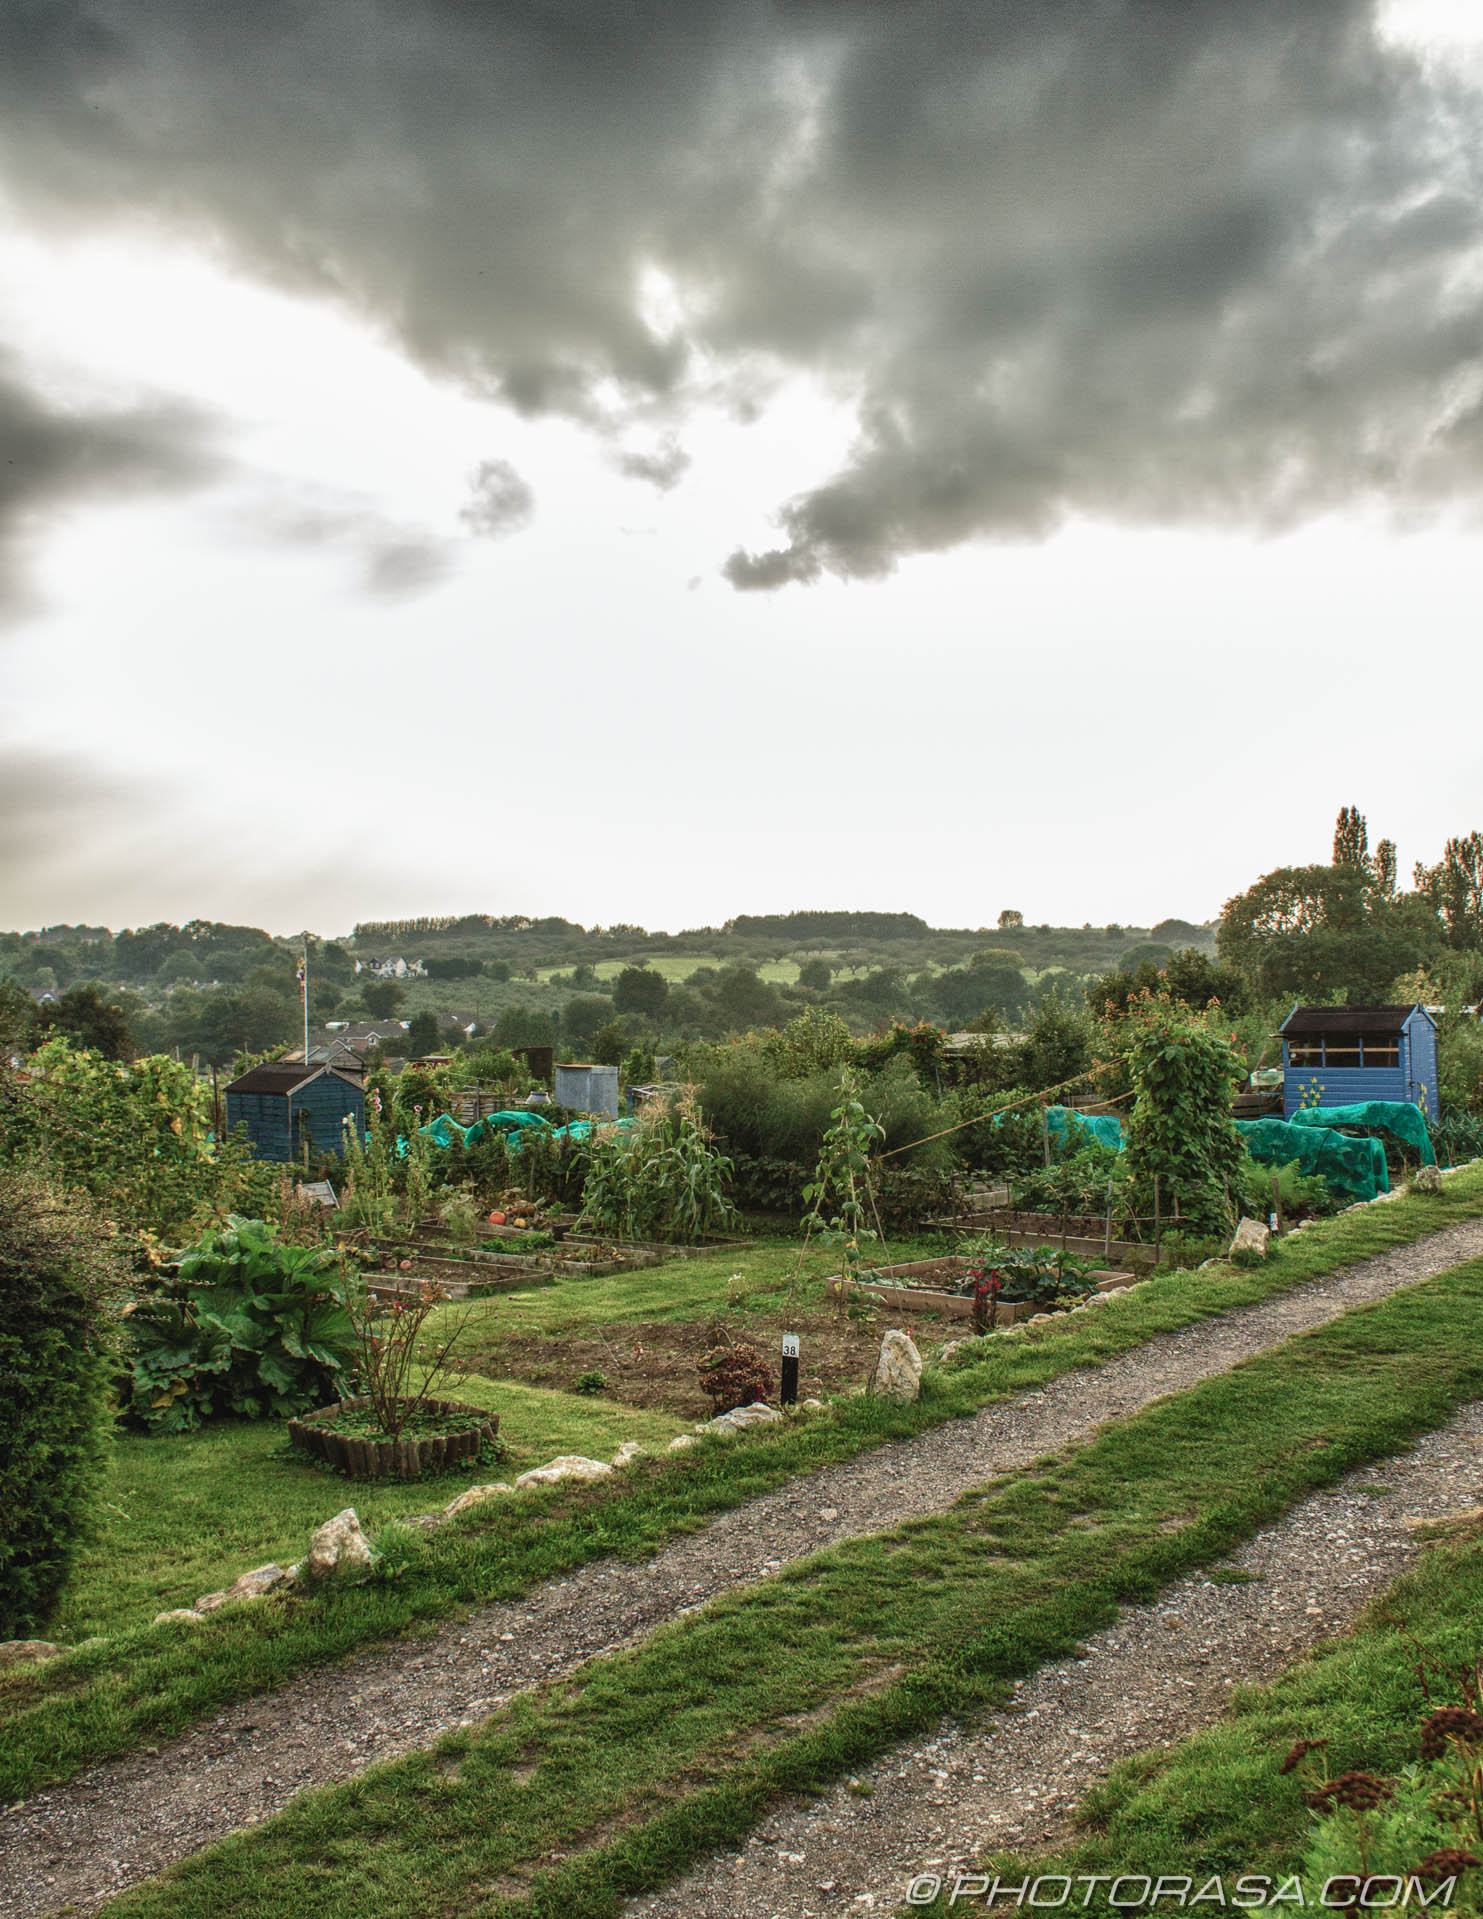 http://photorasa.com/loose-village/allotment-path-on-a-cloudy-day/